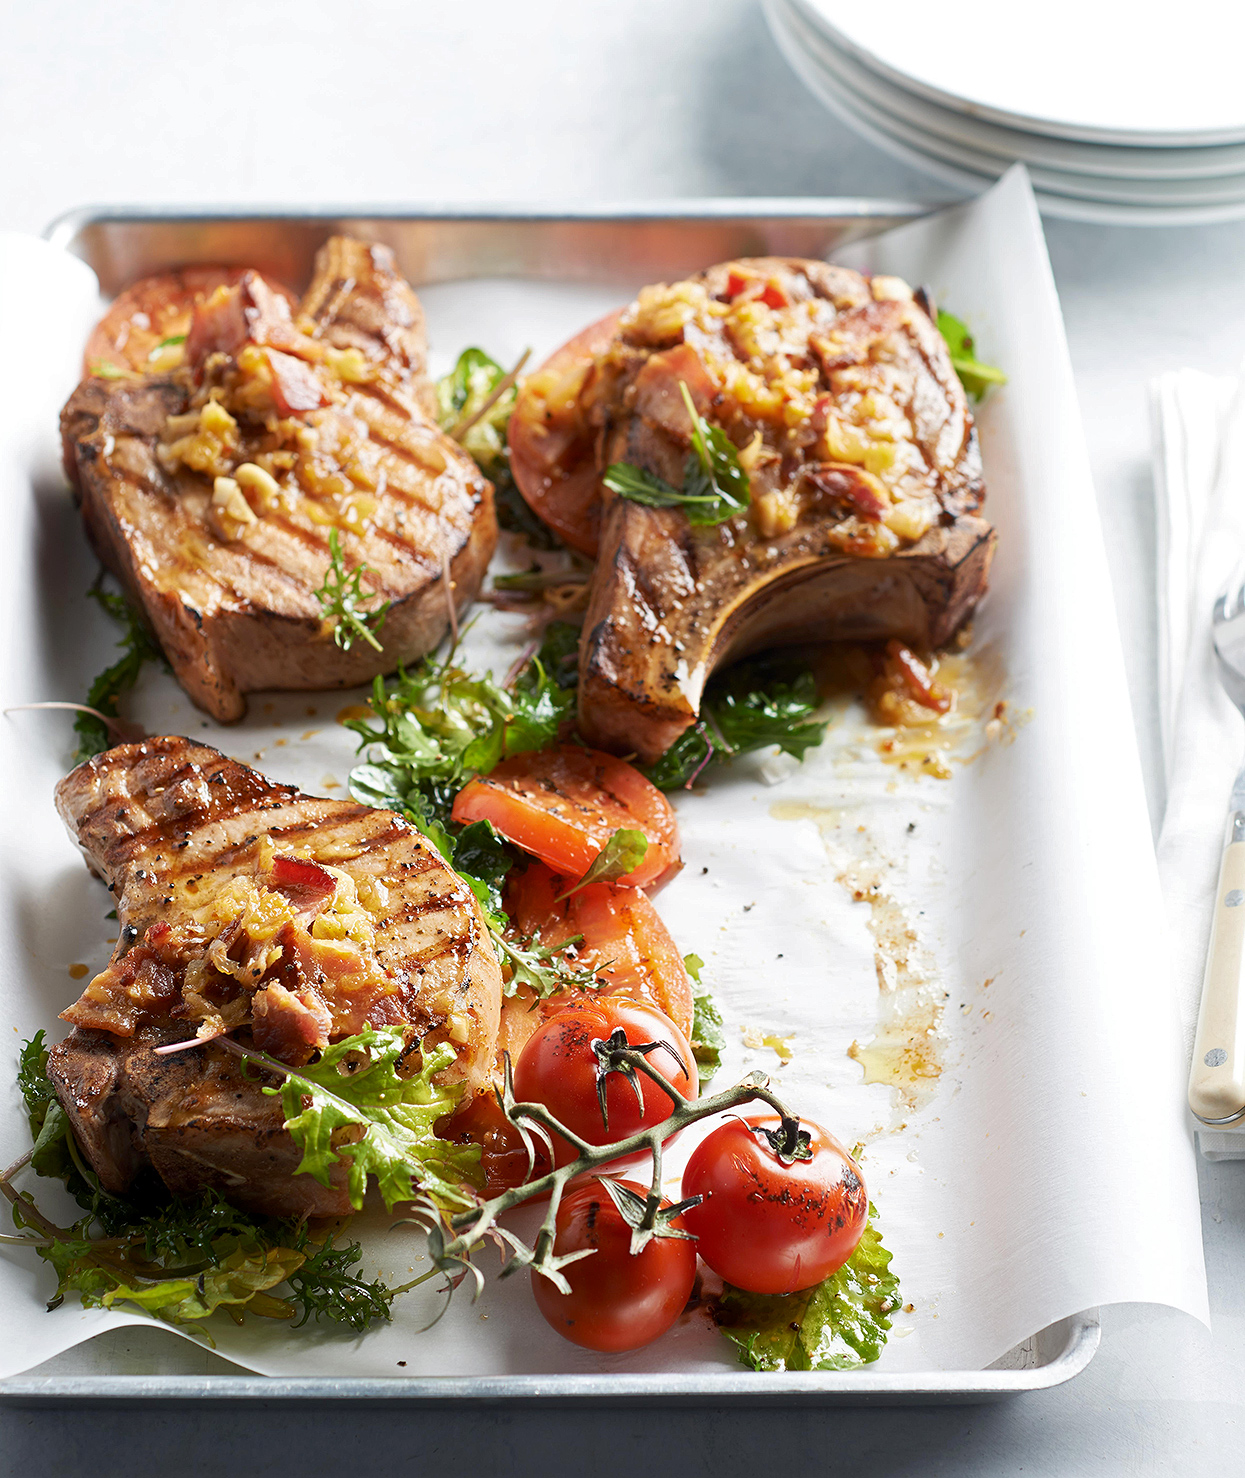 Grilled Pork Chops with Bacon and Tomato